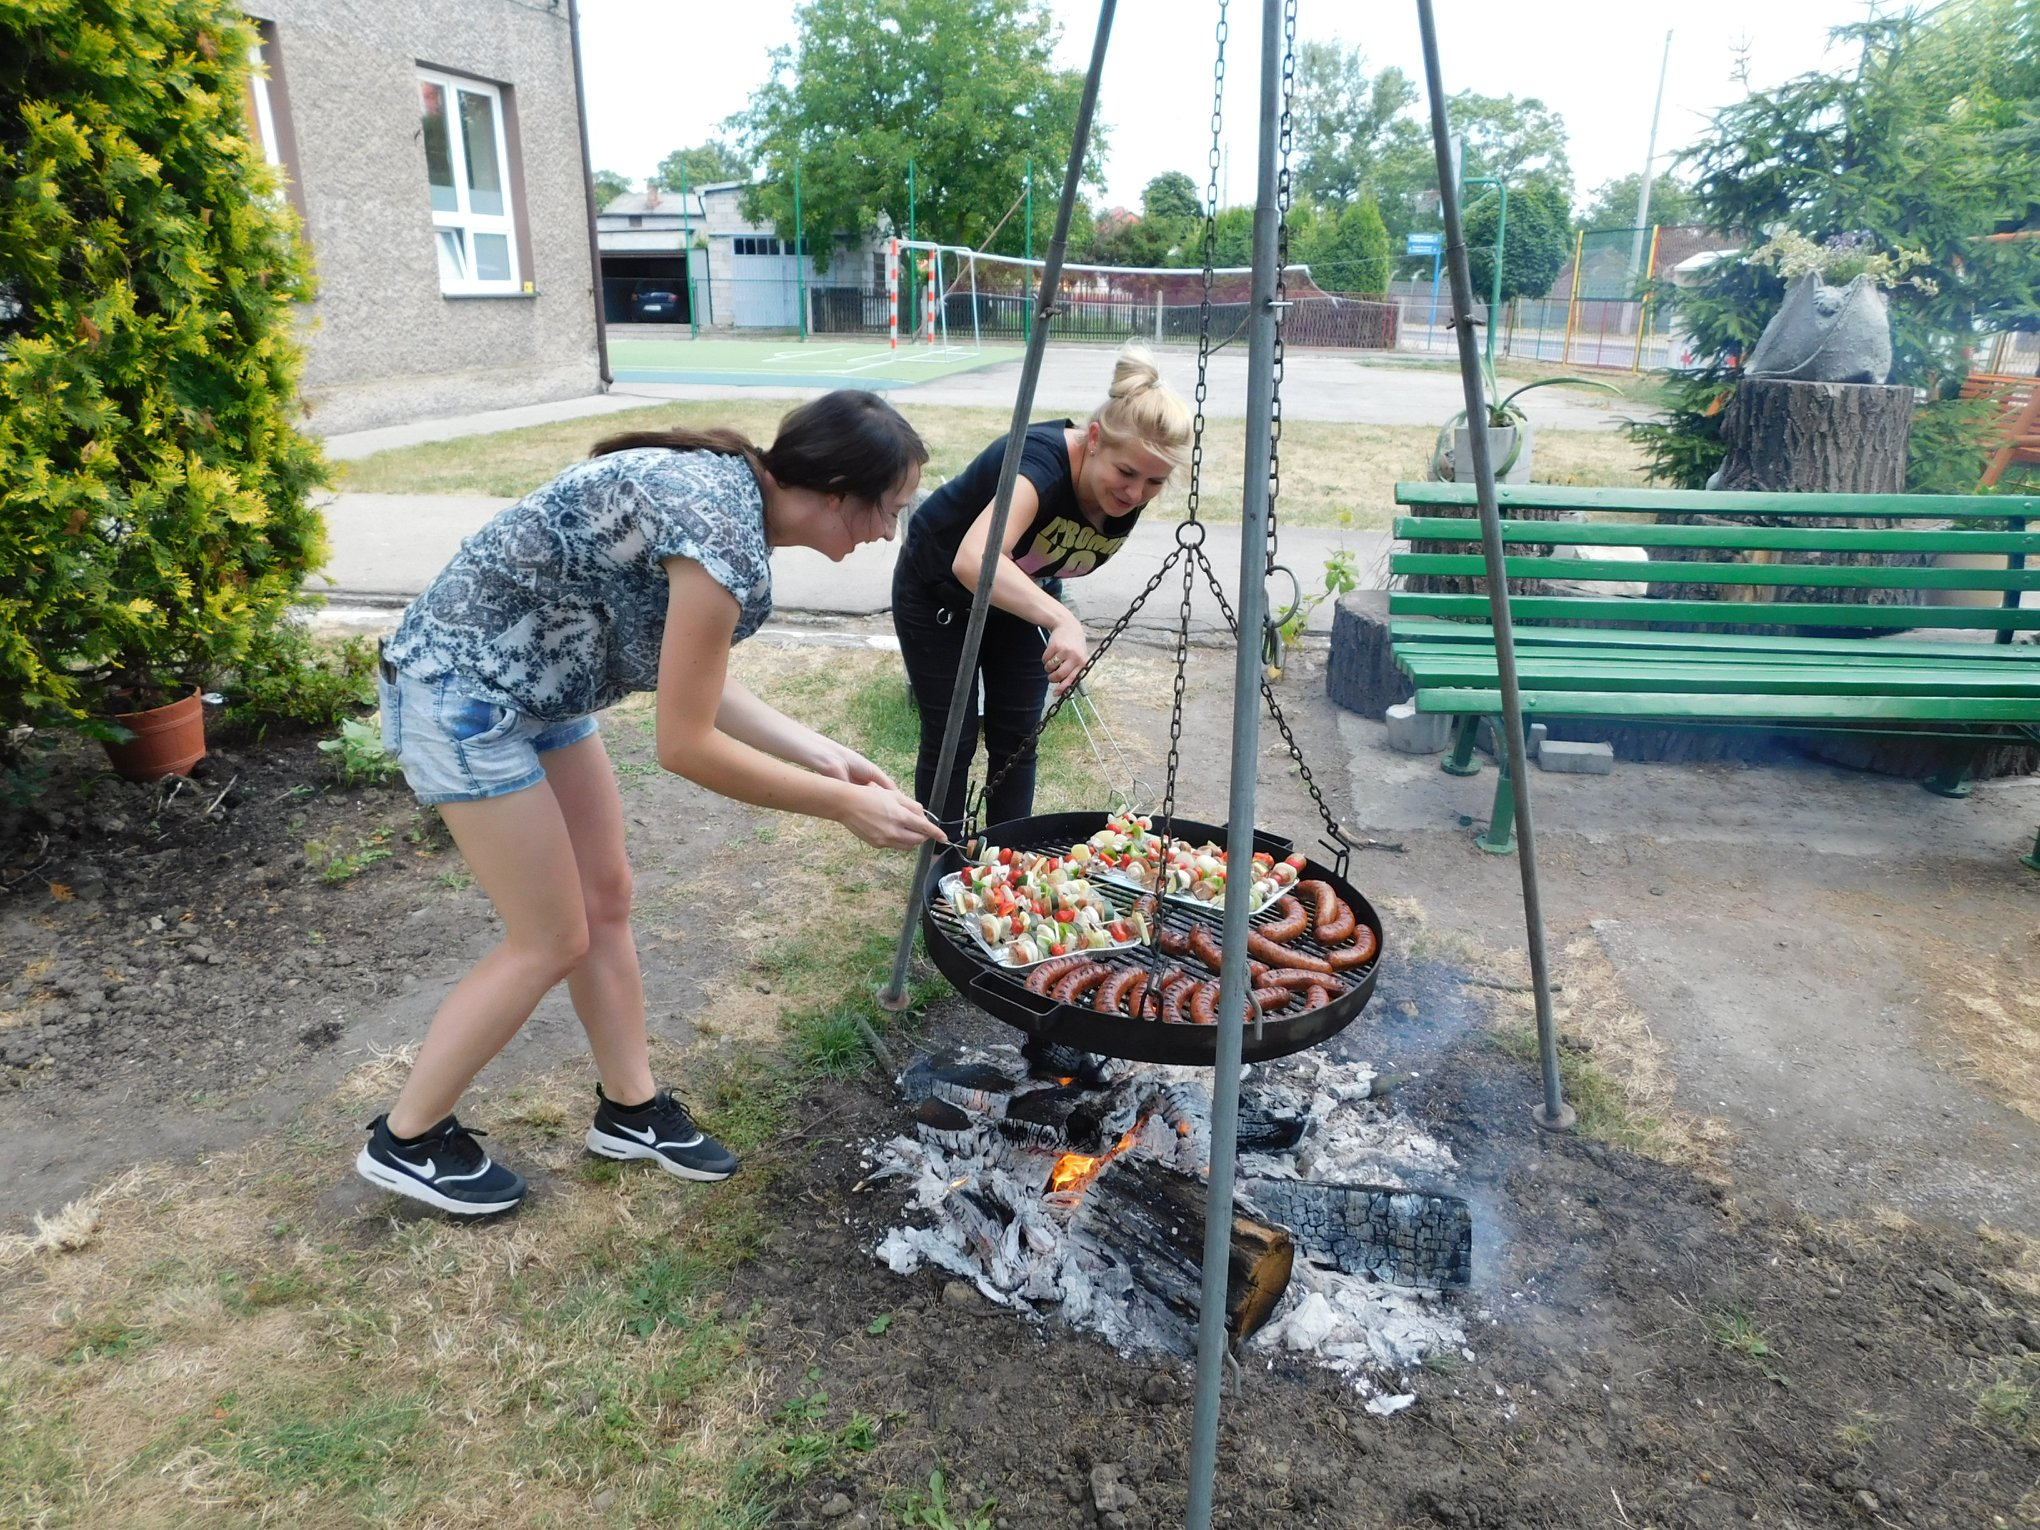 grill_2